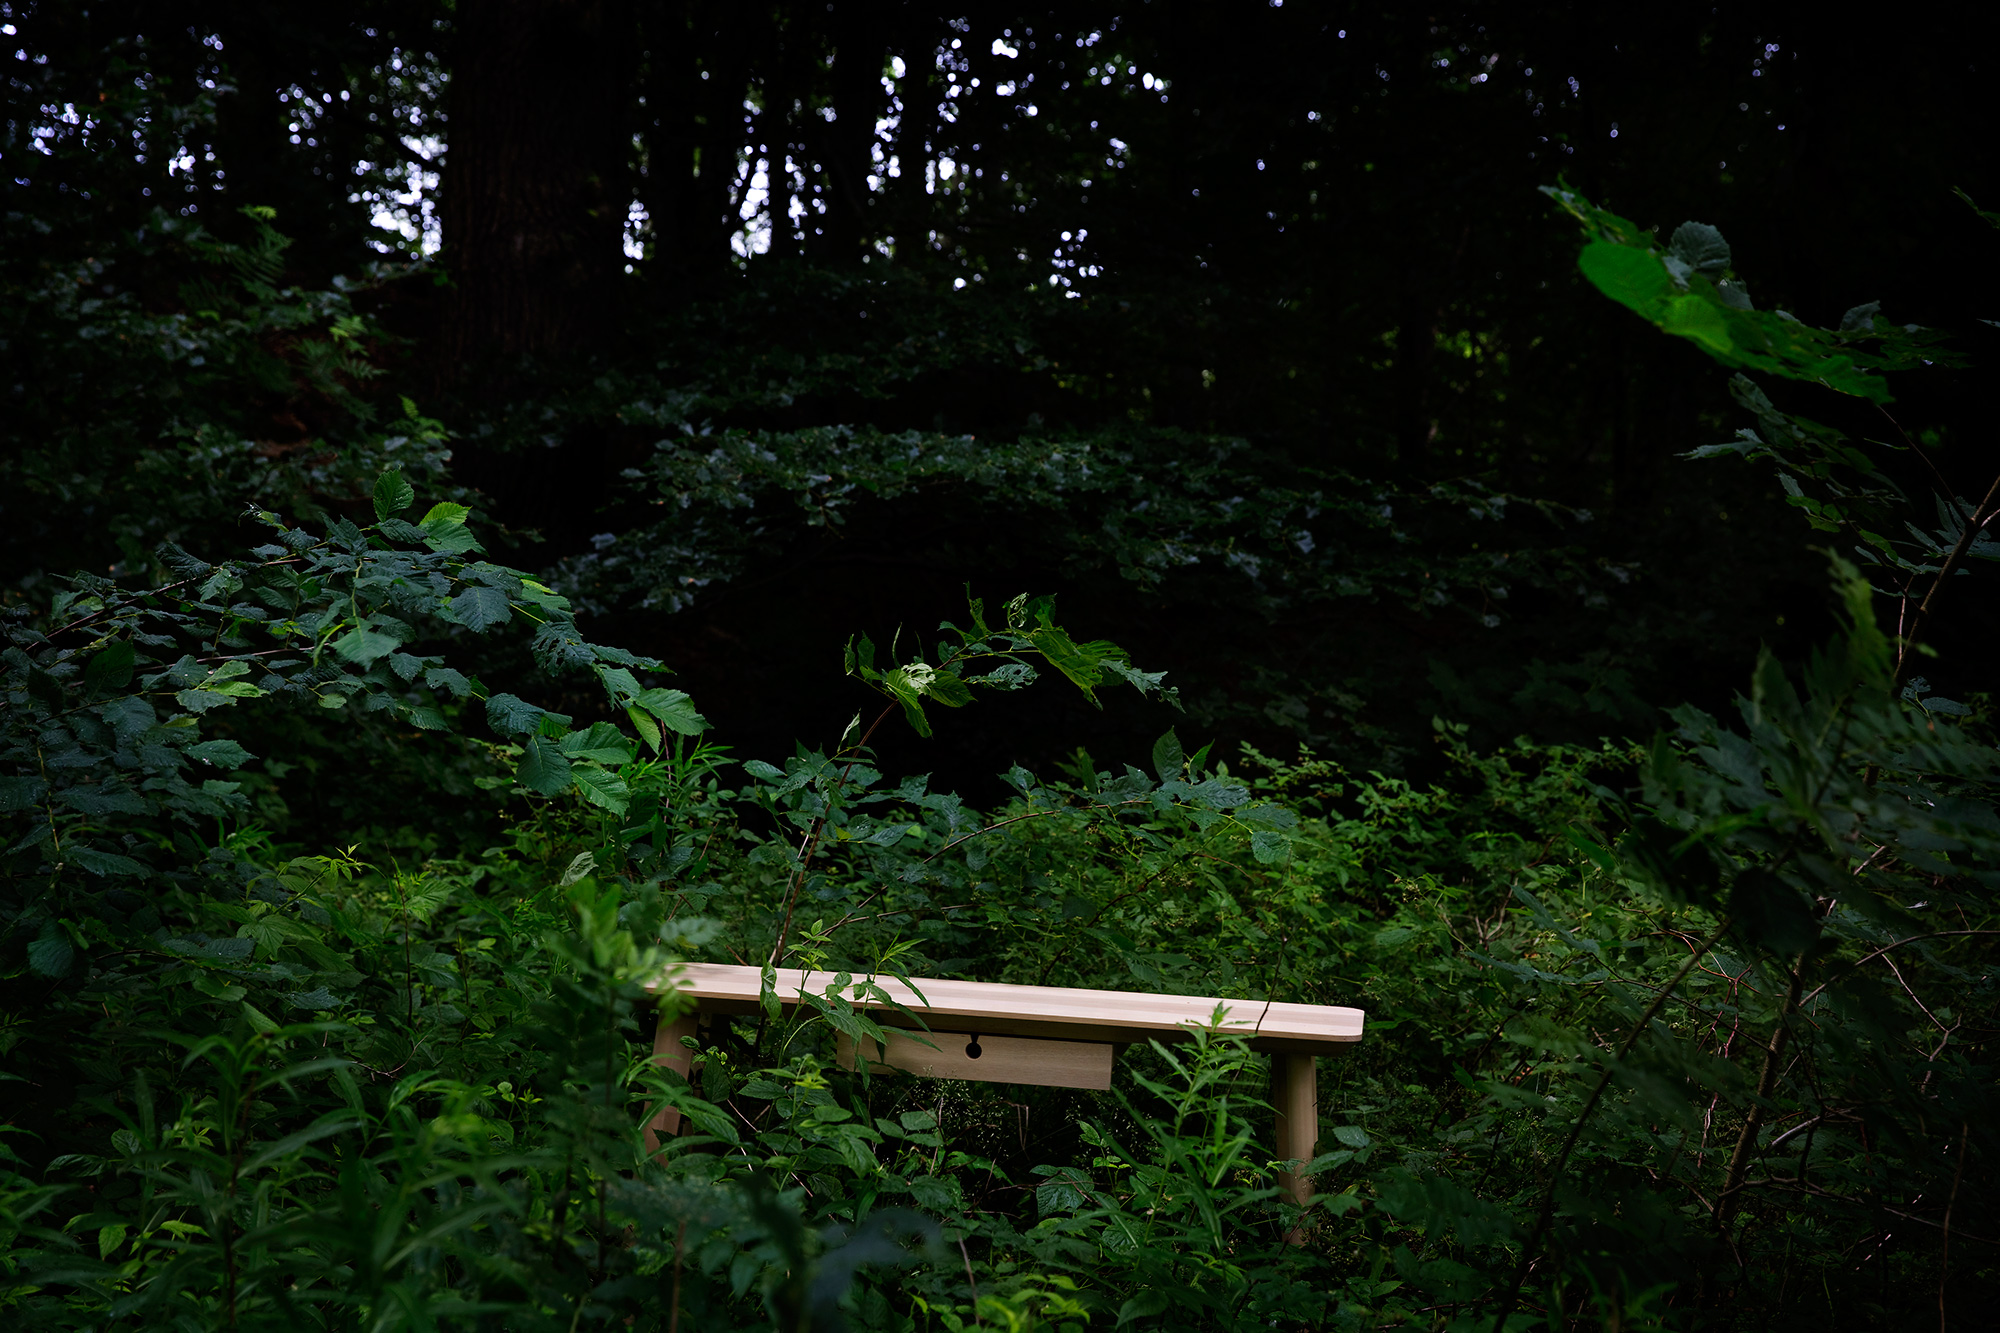 A table in light wood placed in deep foliage on a green, lush hillside.